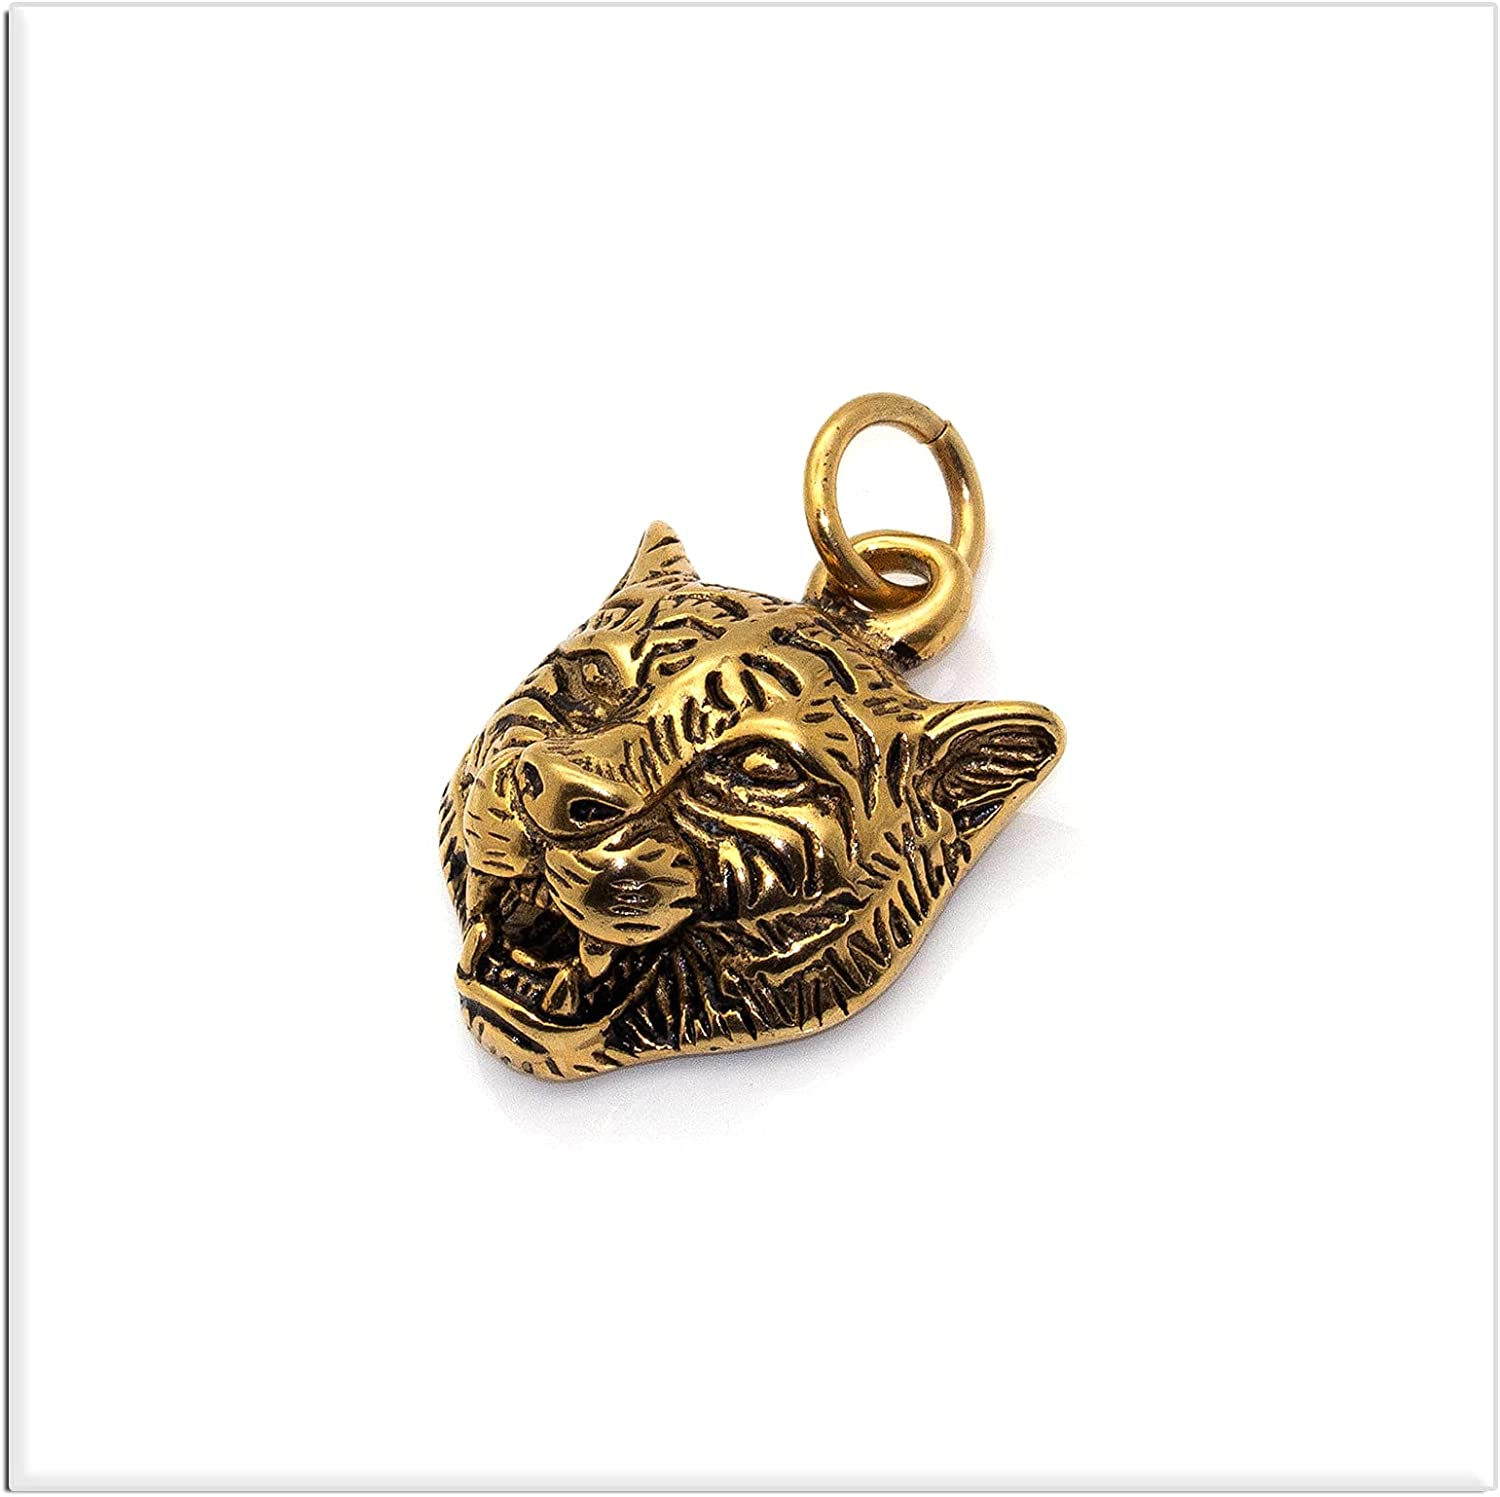 Xusamss Punk Rock Stainless Steel Animal Tiger Head Tag Pendant Charm Necklace